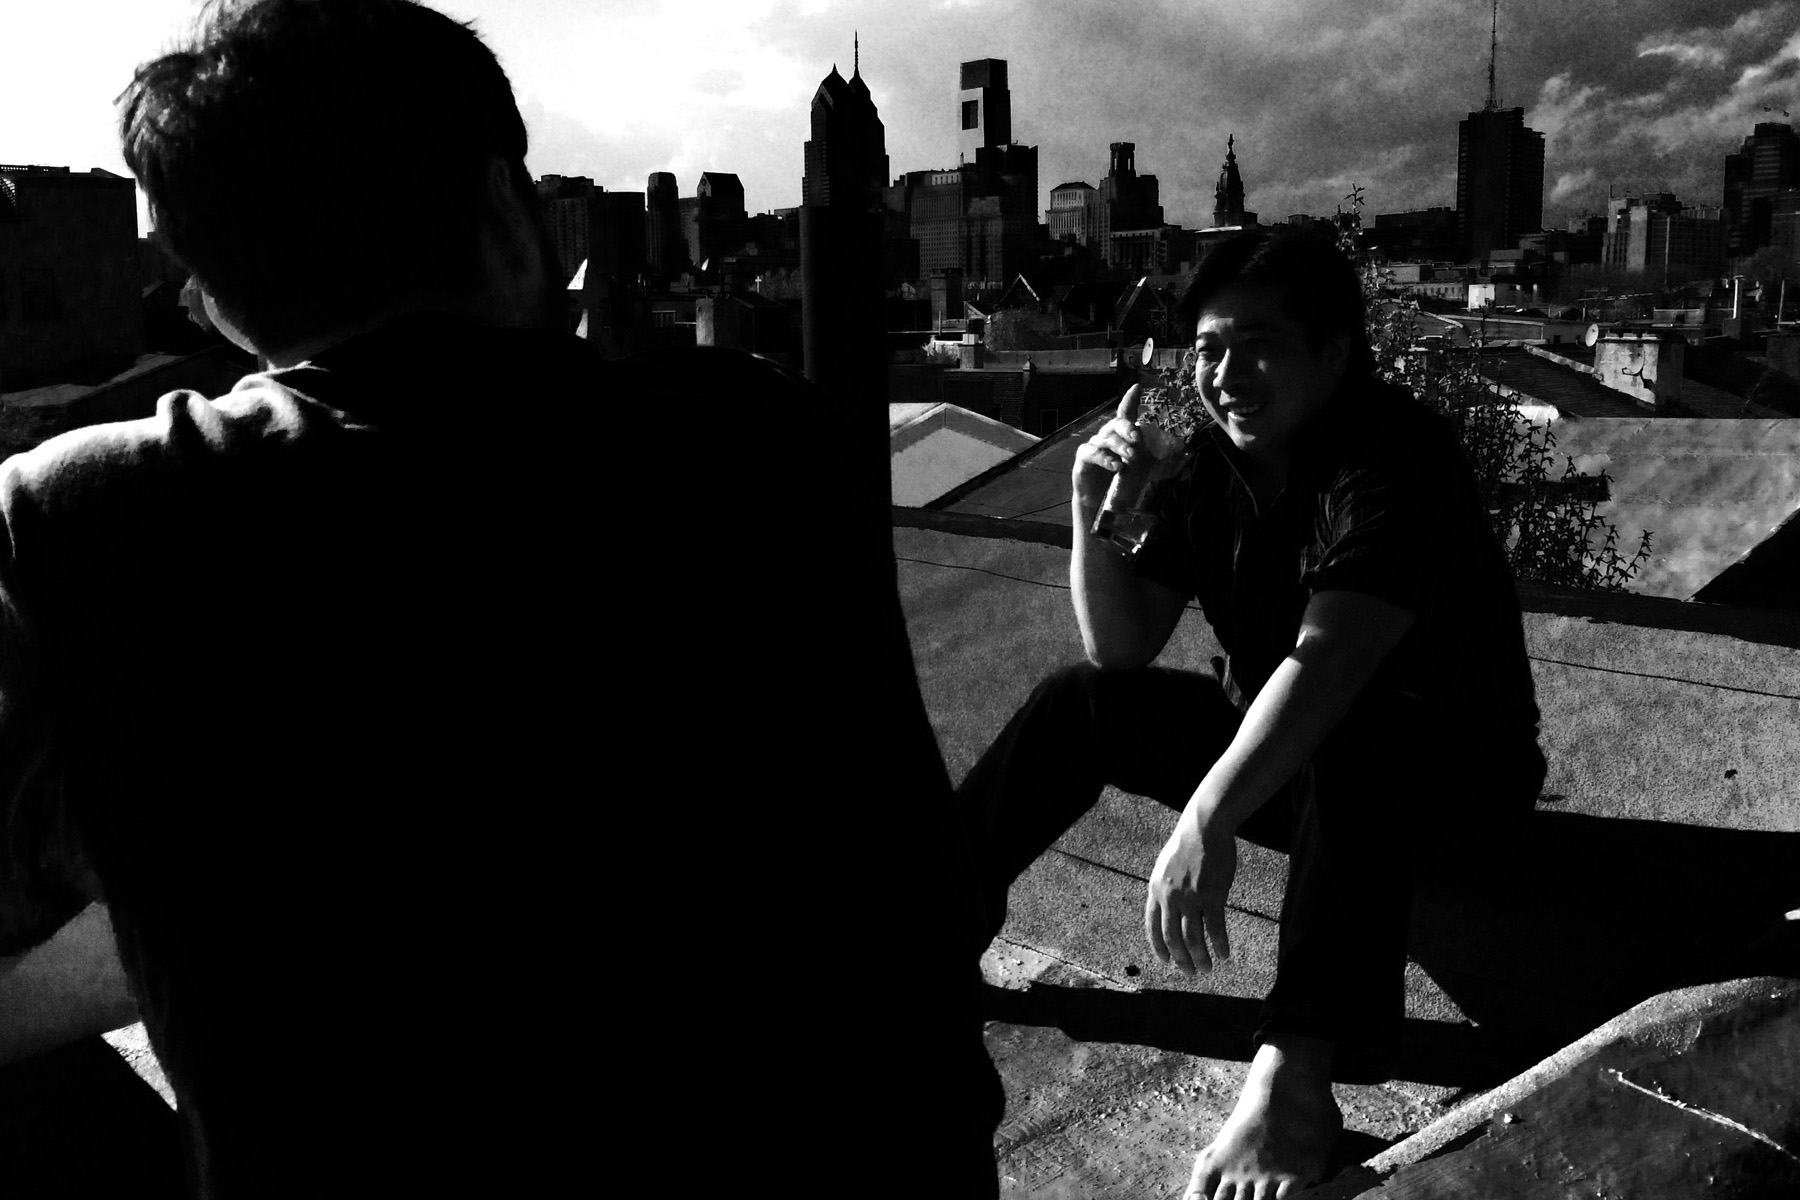 My lifelong friend Benny on a rooftop in south Philly